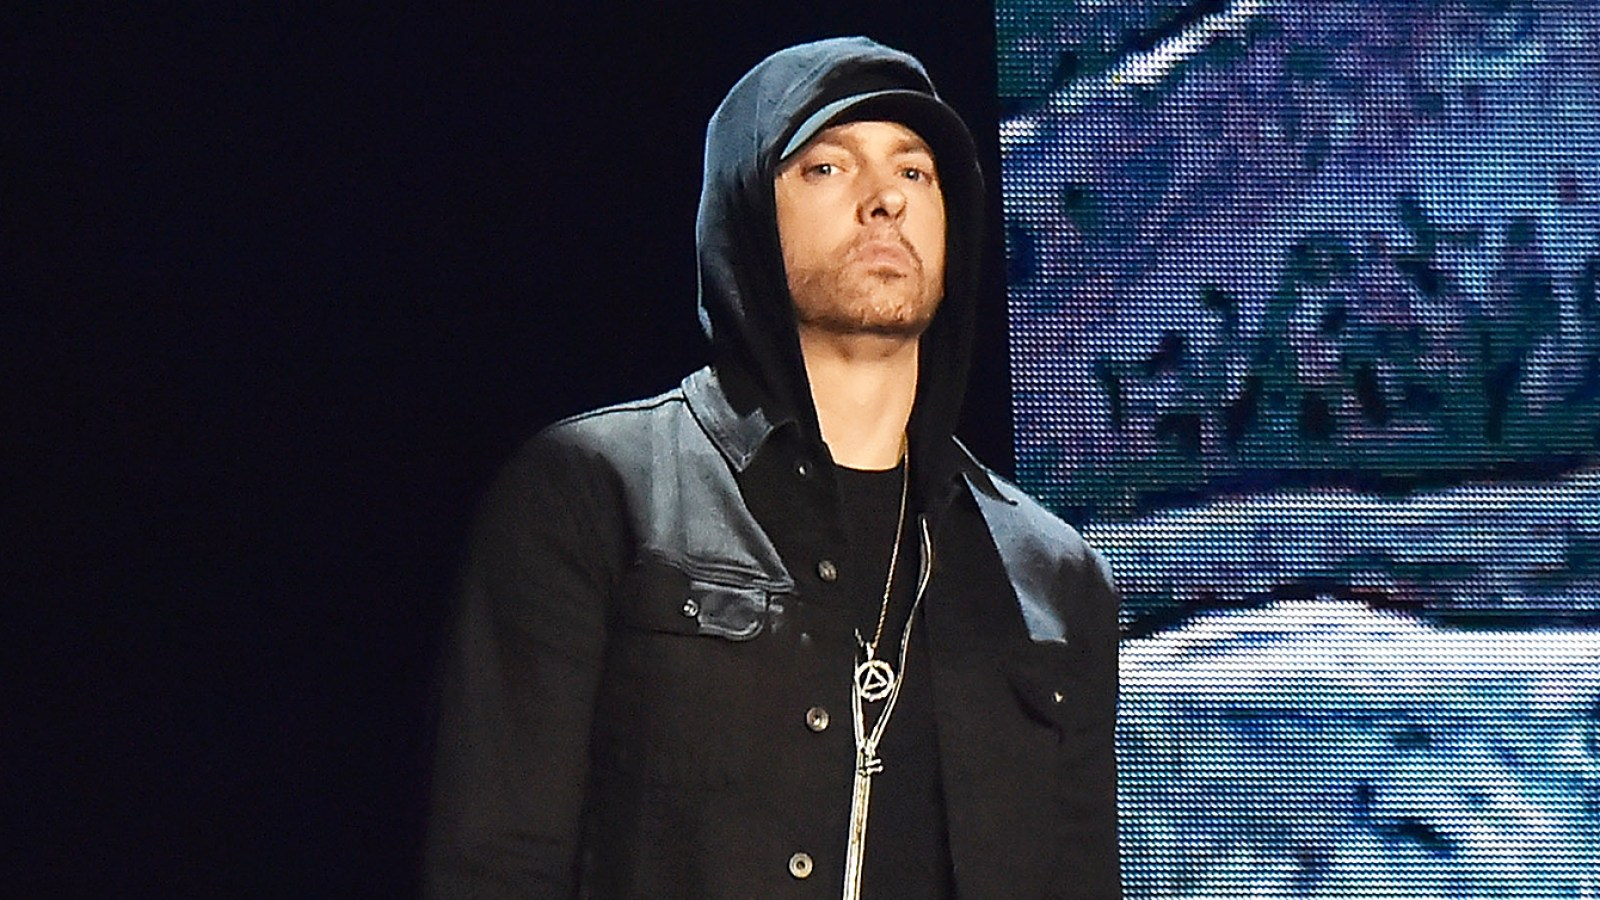 Eminem Drops New Album Revival 5 Biggest Moments